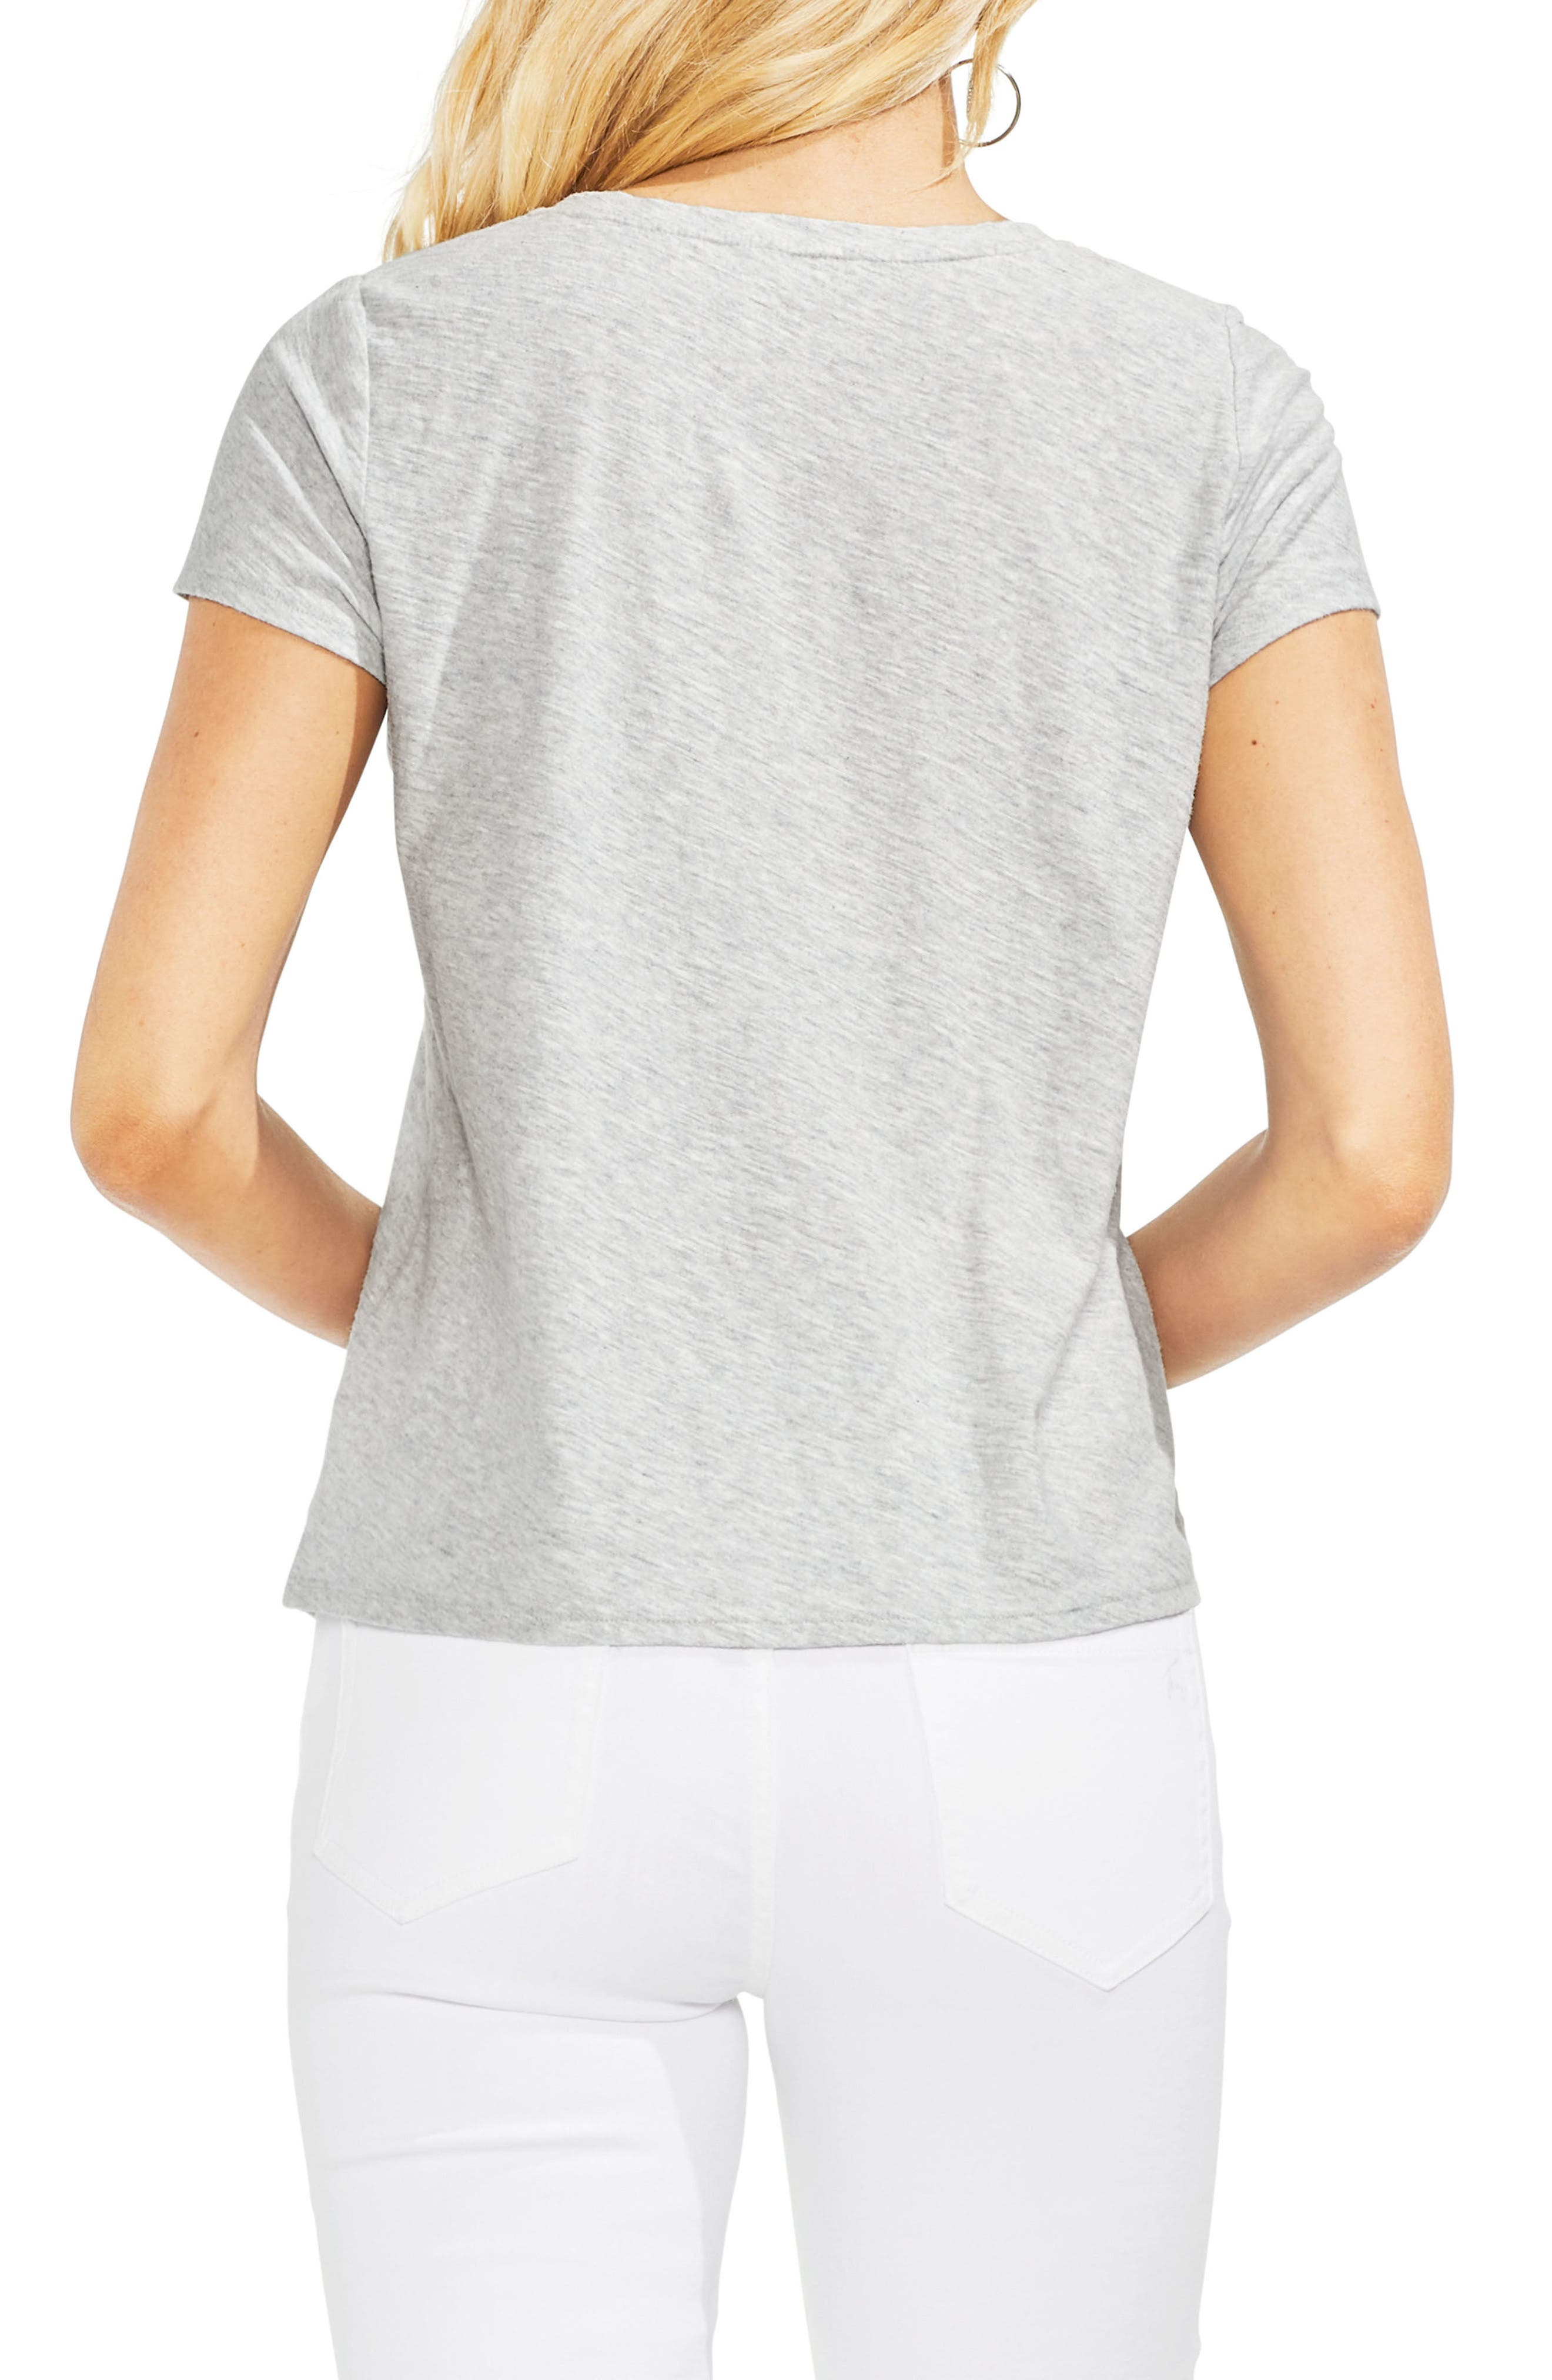 Embroidered Stripe Panel Cotton Tee,                             Alternate thumbnail 2, color,                             Grey Heather